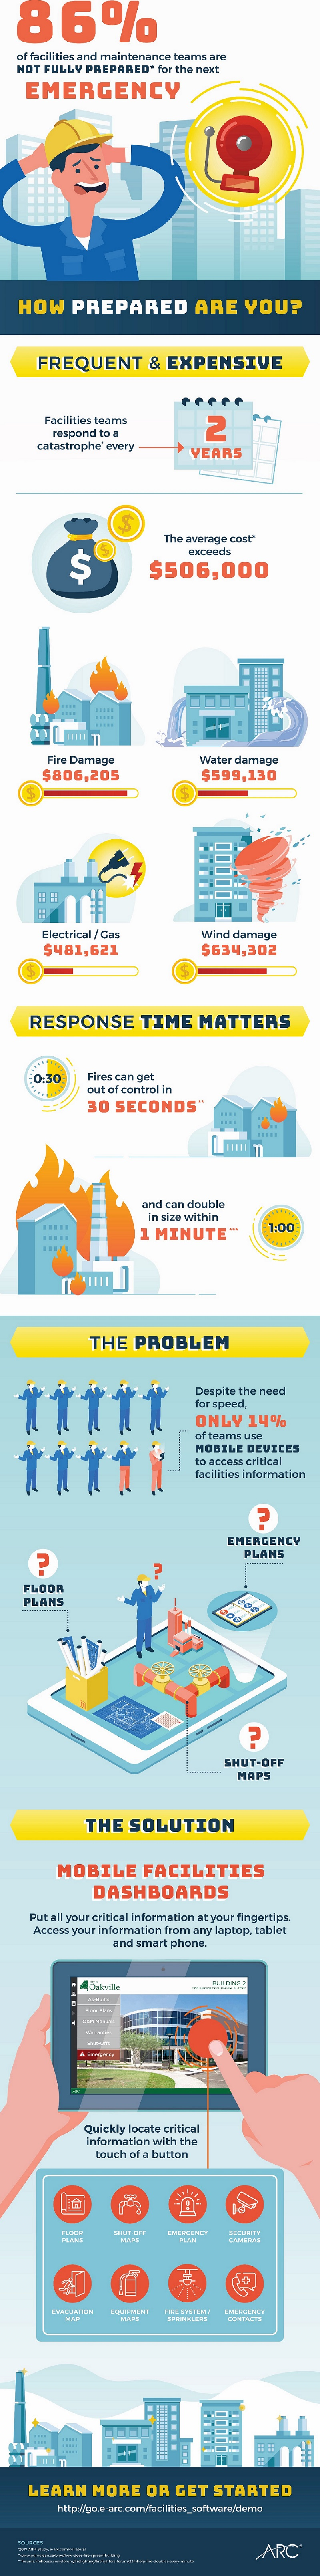 Emergency Facility Dashboard infographic